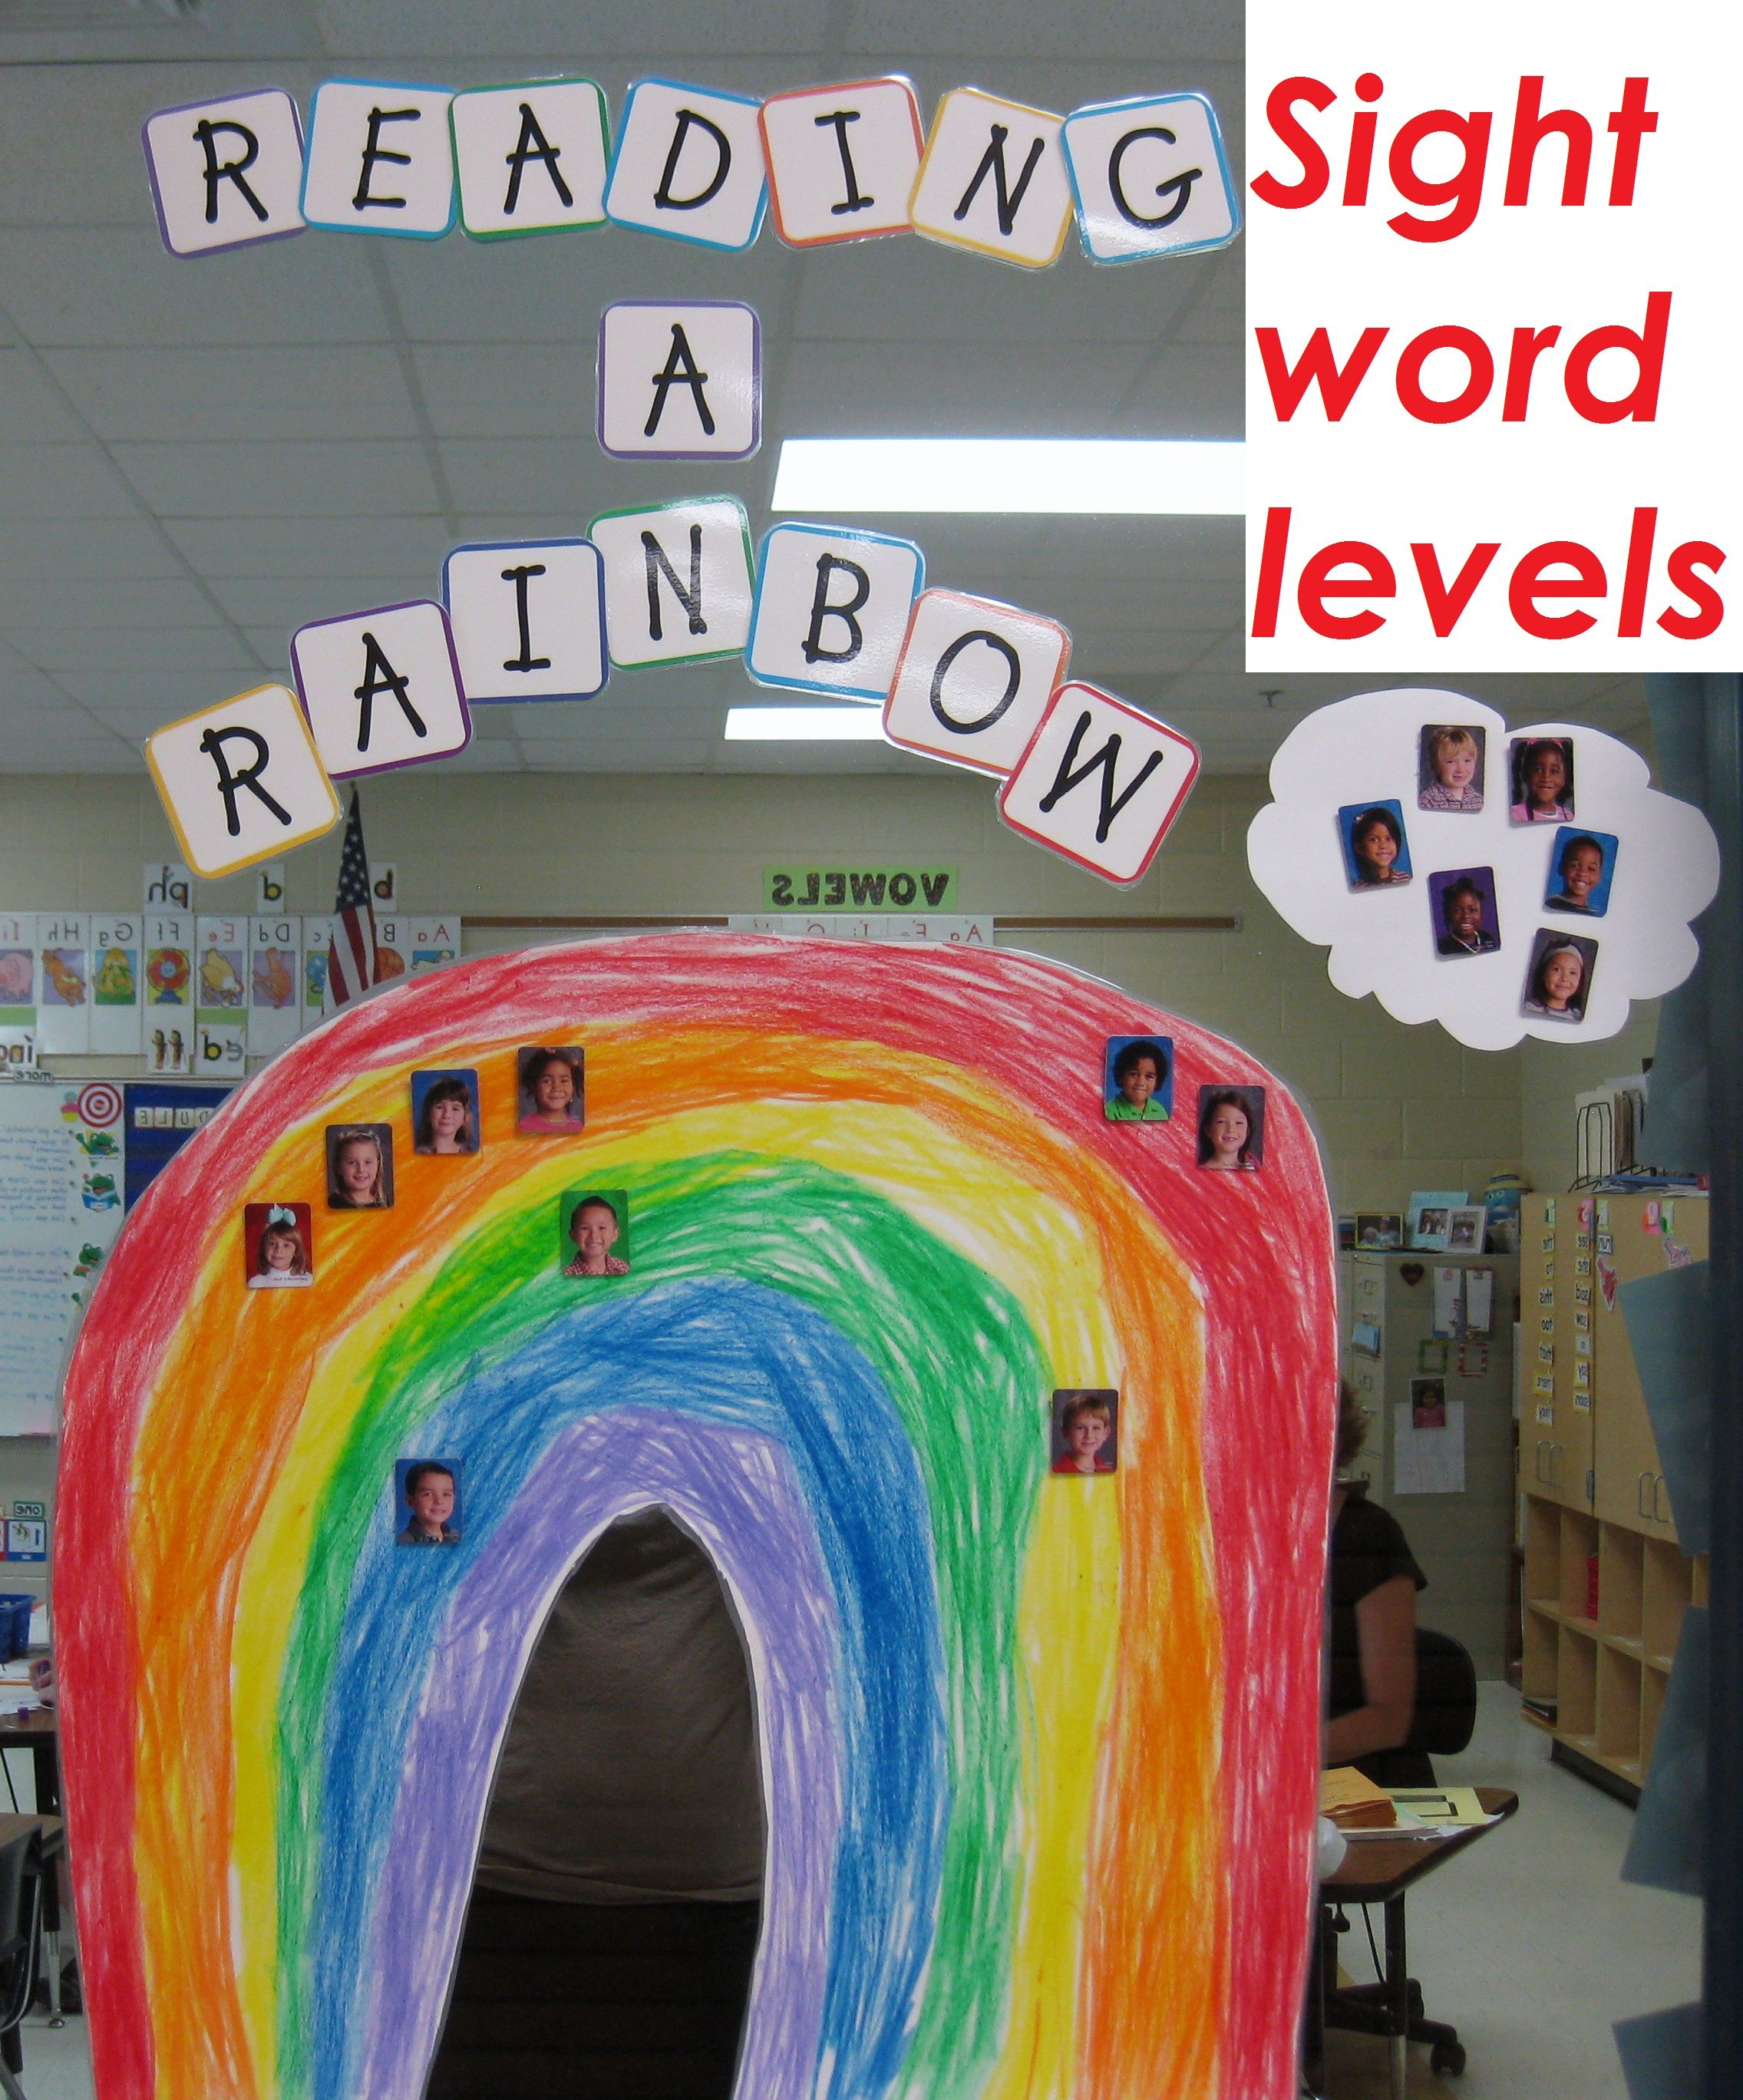 Students Are Tested On Sight Words Monthly And Move Up The